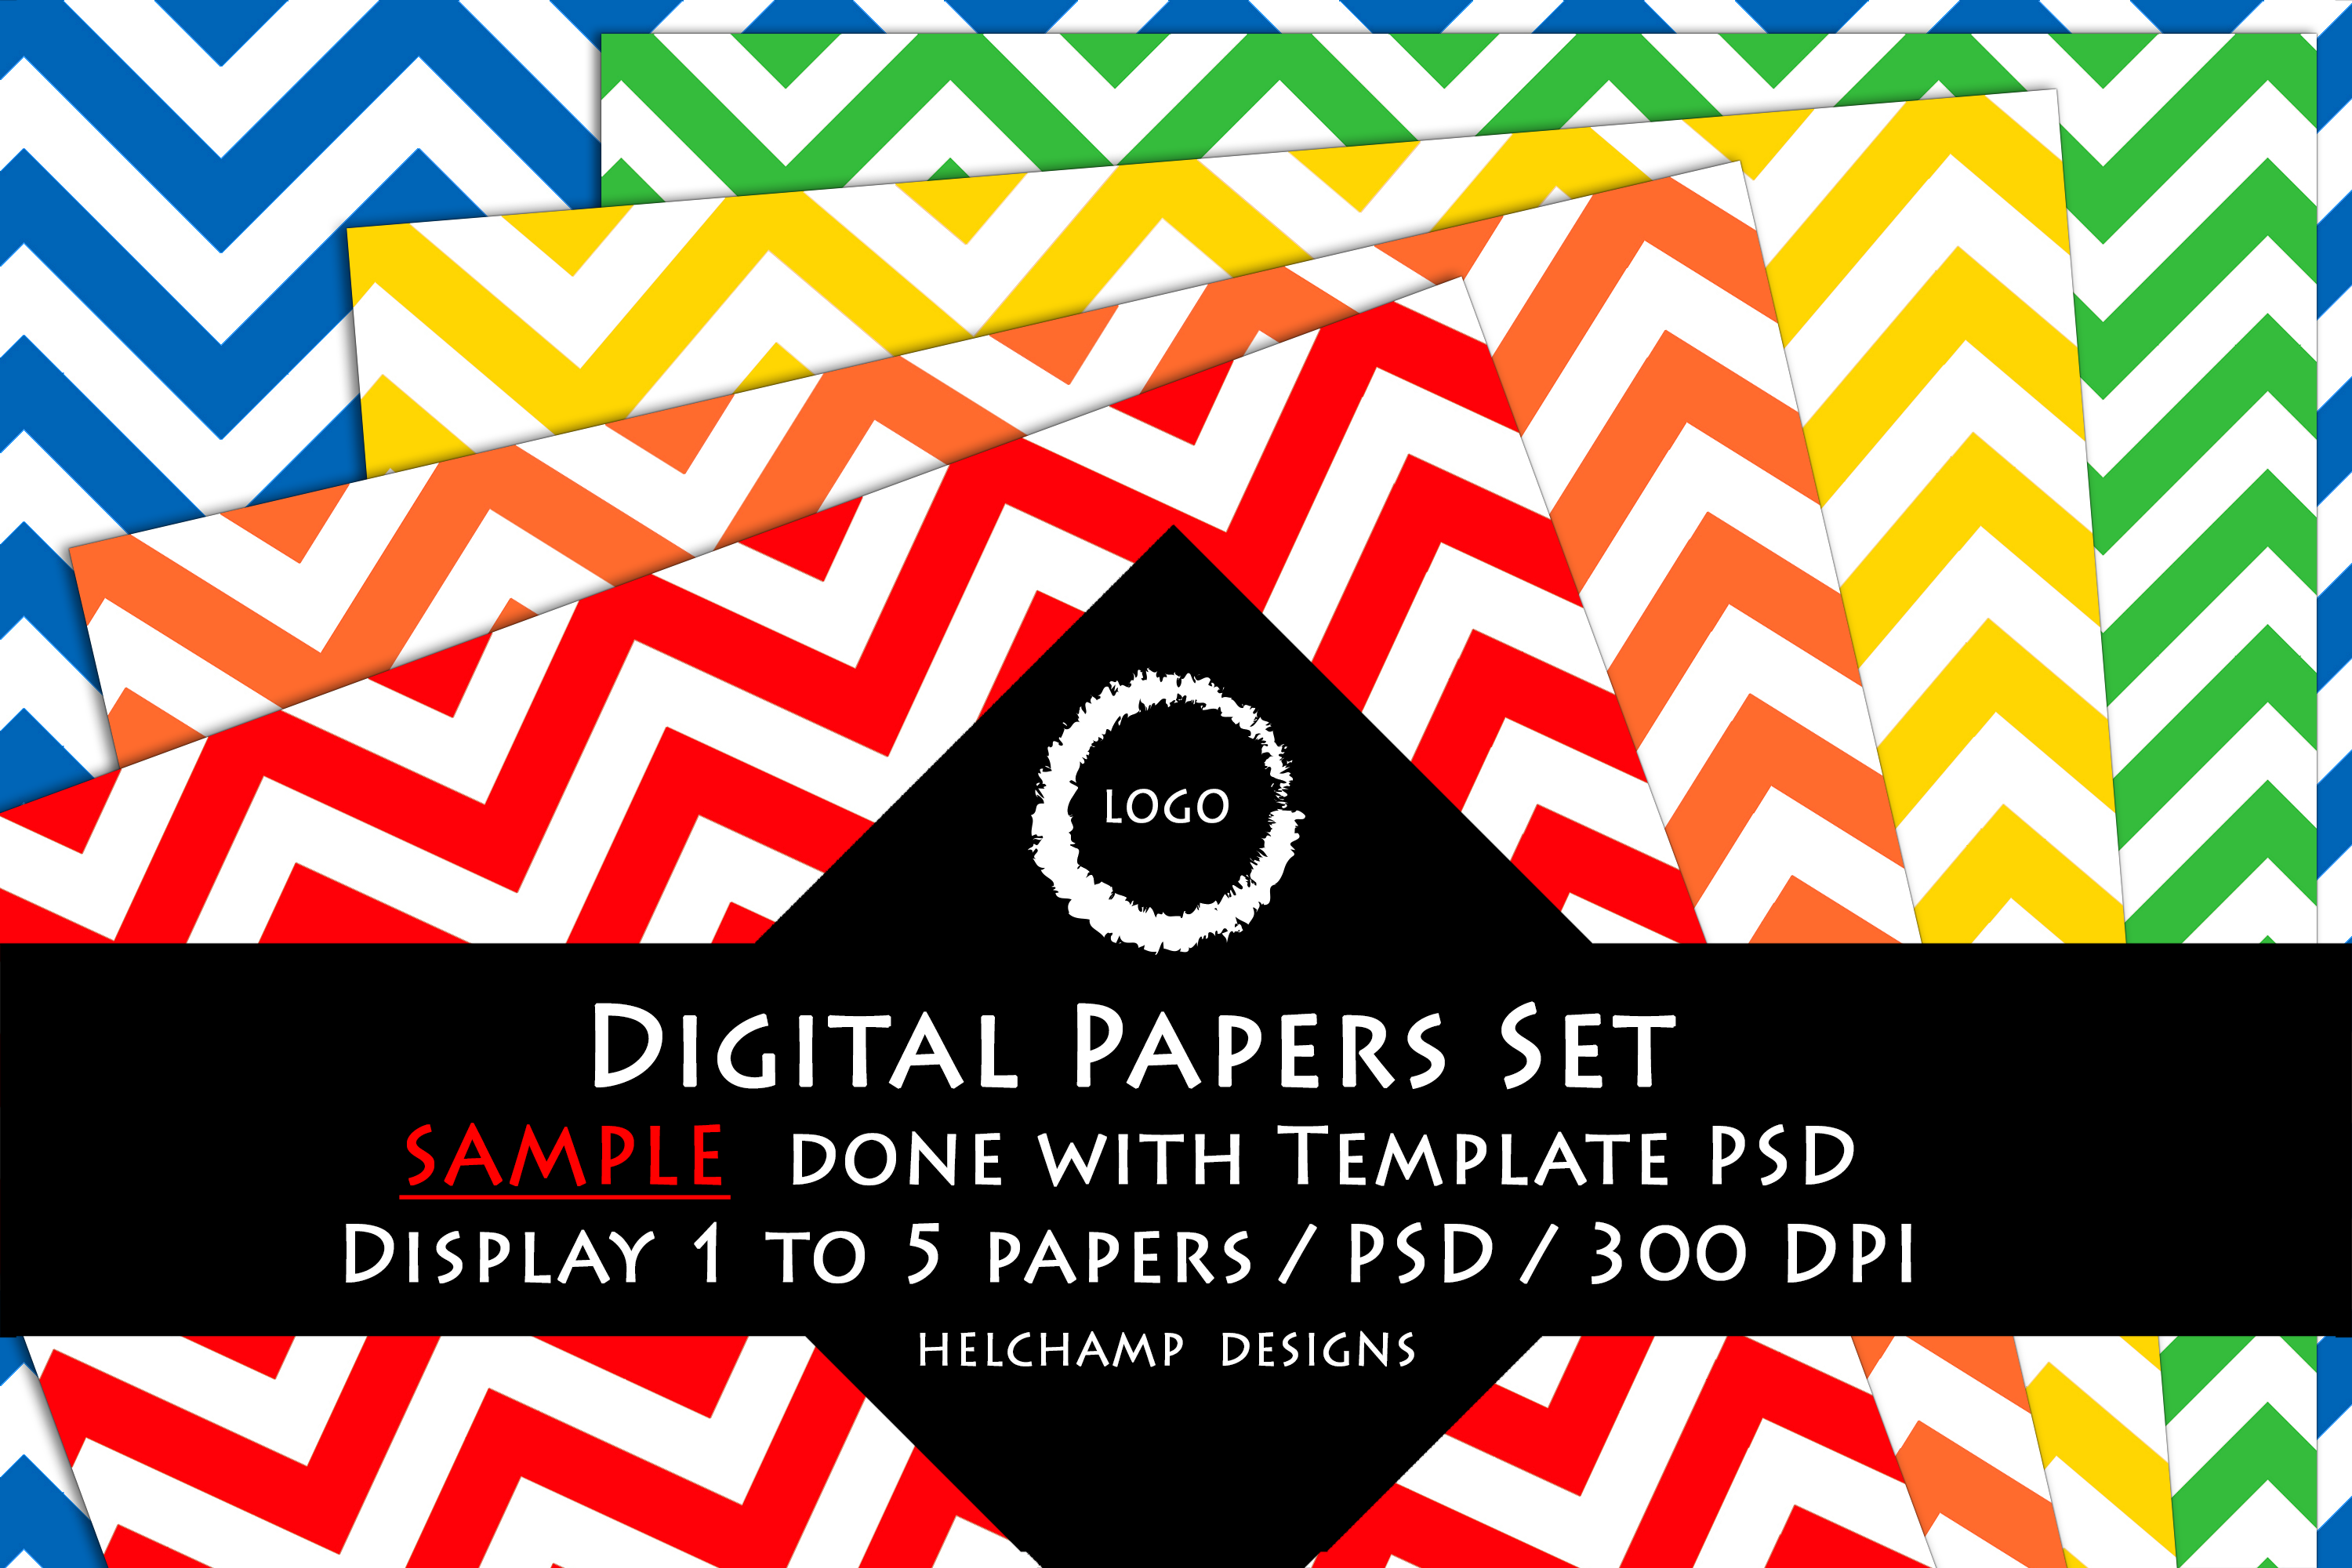 1 to 5 Panels Mockup for Digital Papers - M02 example image 4